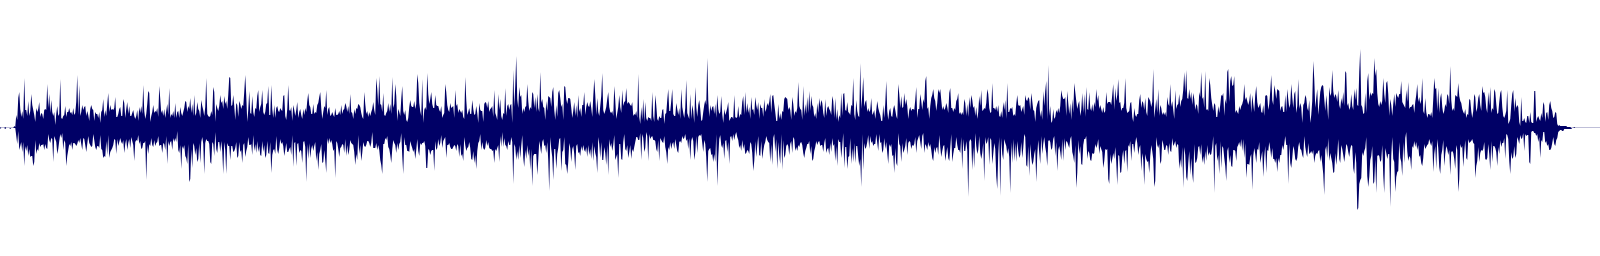 waveform of track #129424